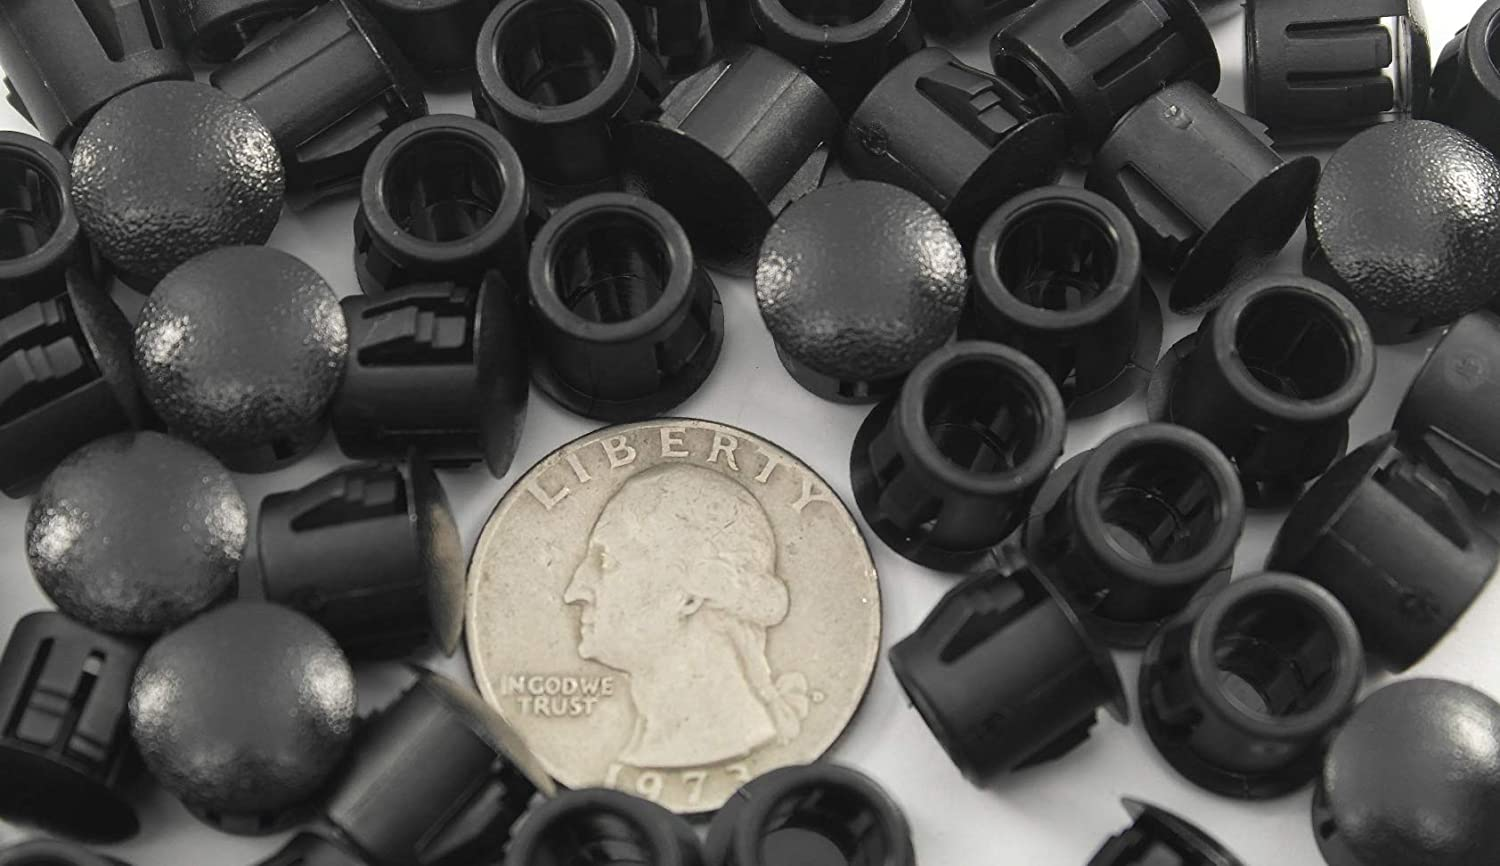 Provides Finished Appearance 3//8 Black Nylon Hole Plugs Fits 3//8 Diameter Hole 50 Durable Nylon Plug Snaps Into Hole with Locking Tabs That Hold in Place Slightly Domed Convex Surface